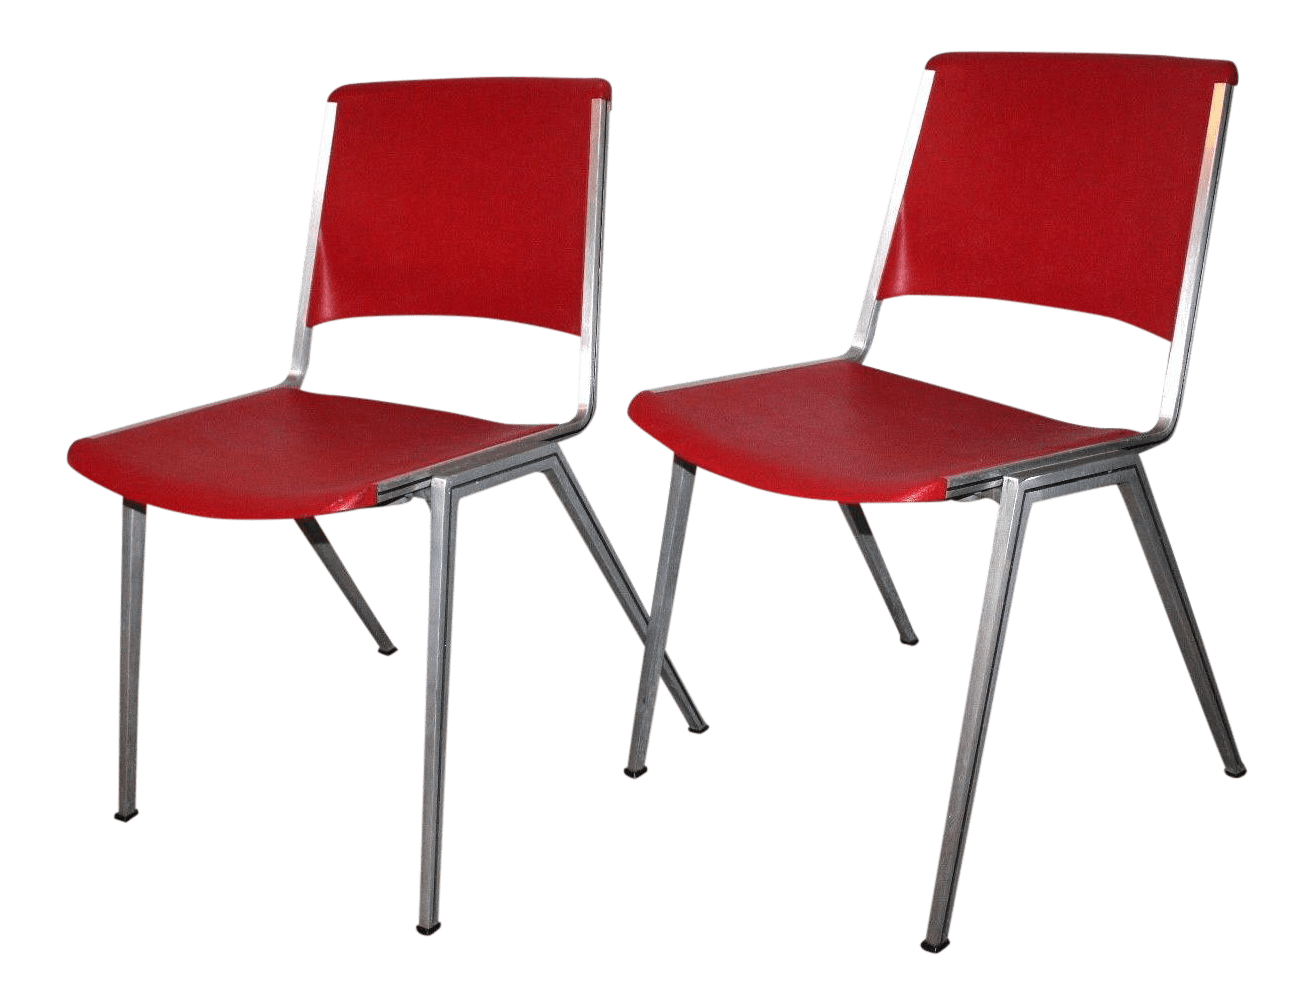 mid century modern plastic chairs evac chair 300h mk4 1960s steelcase stackable red a pair for sale